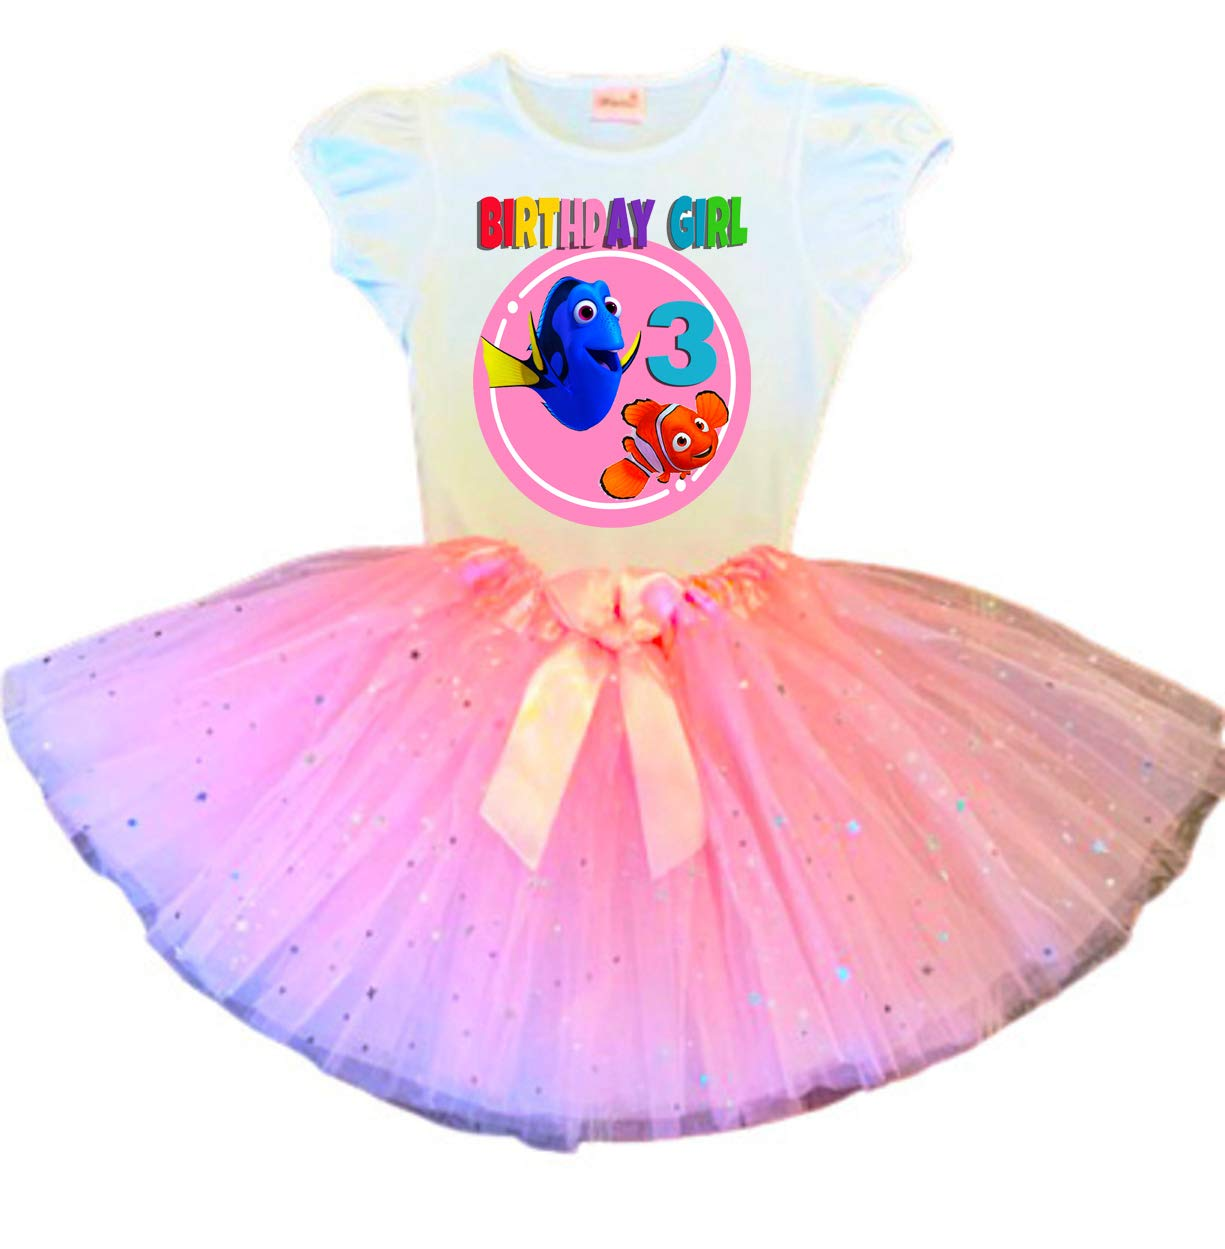 Dory and Nemo Birthday Max 40% Bombing free shipping OFF Tutu Party Pink 3rd O Dress